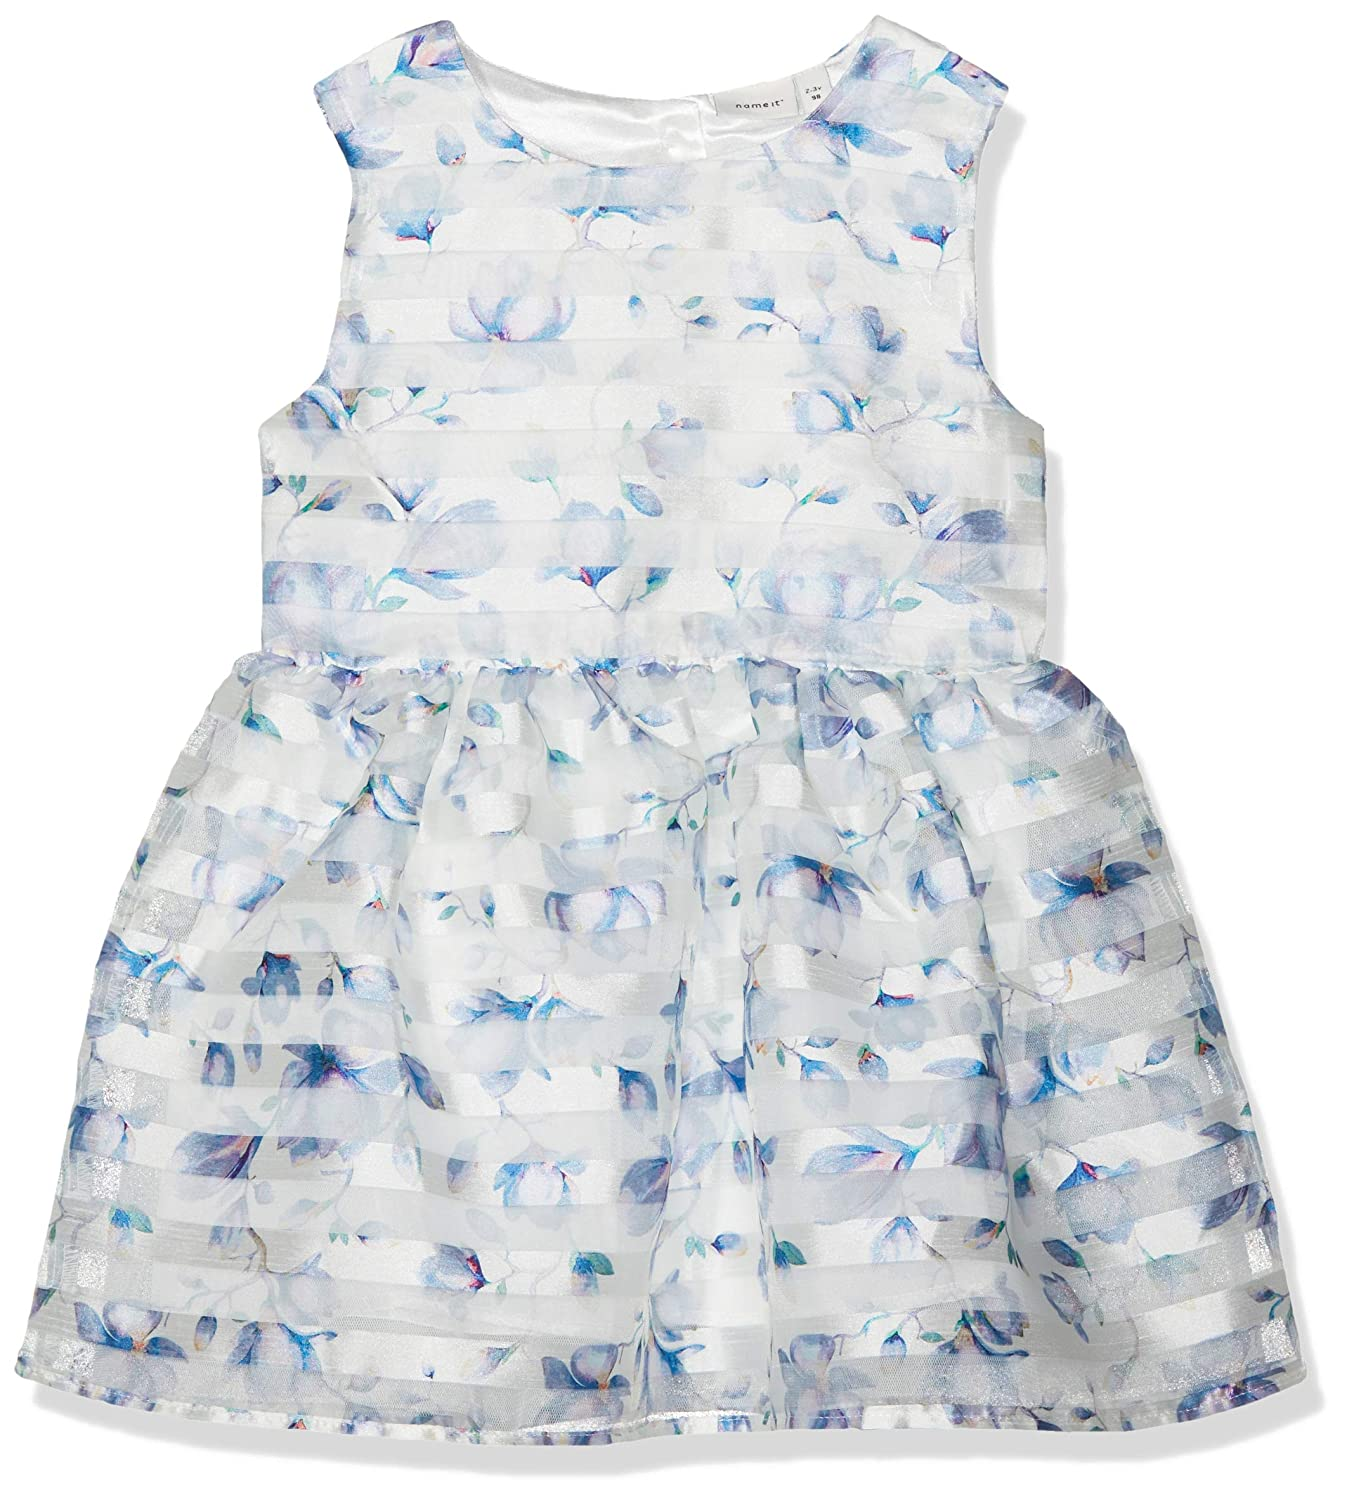 NAME IT M/ädchen Nmffreia Spencer Kleid